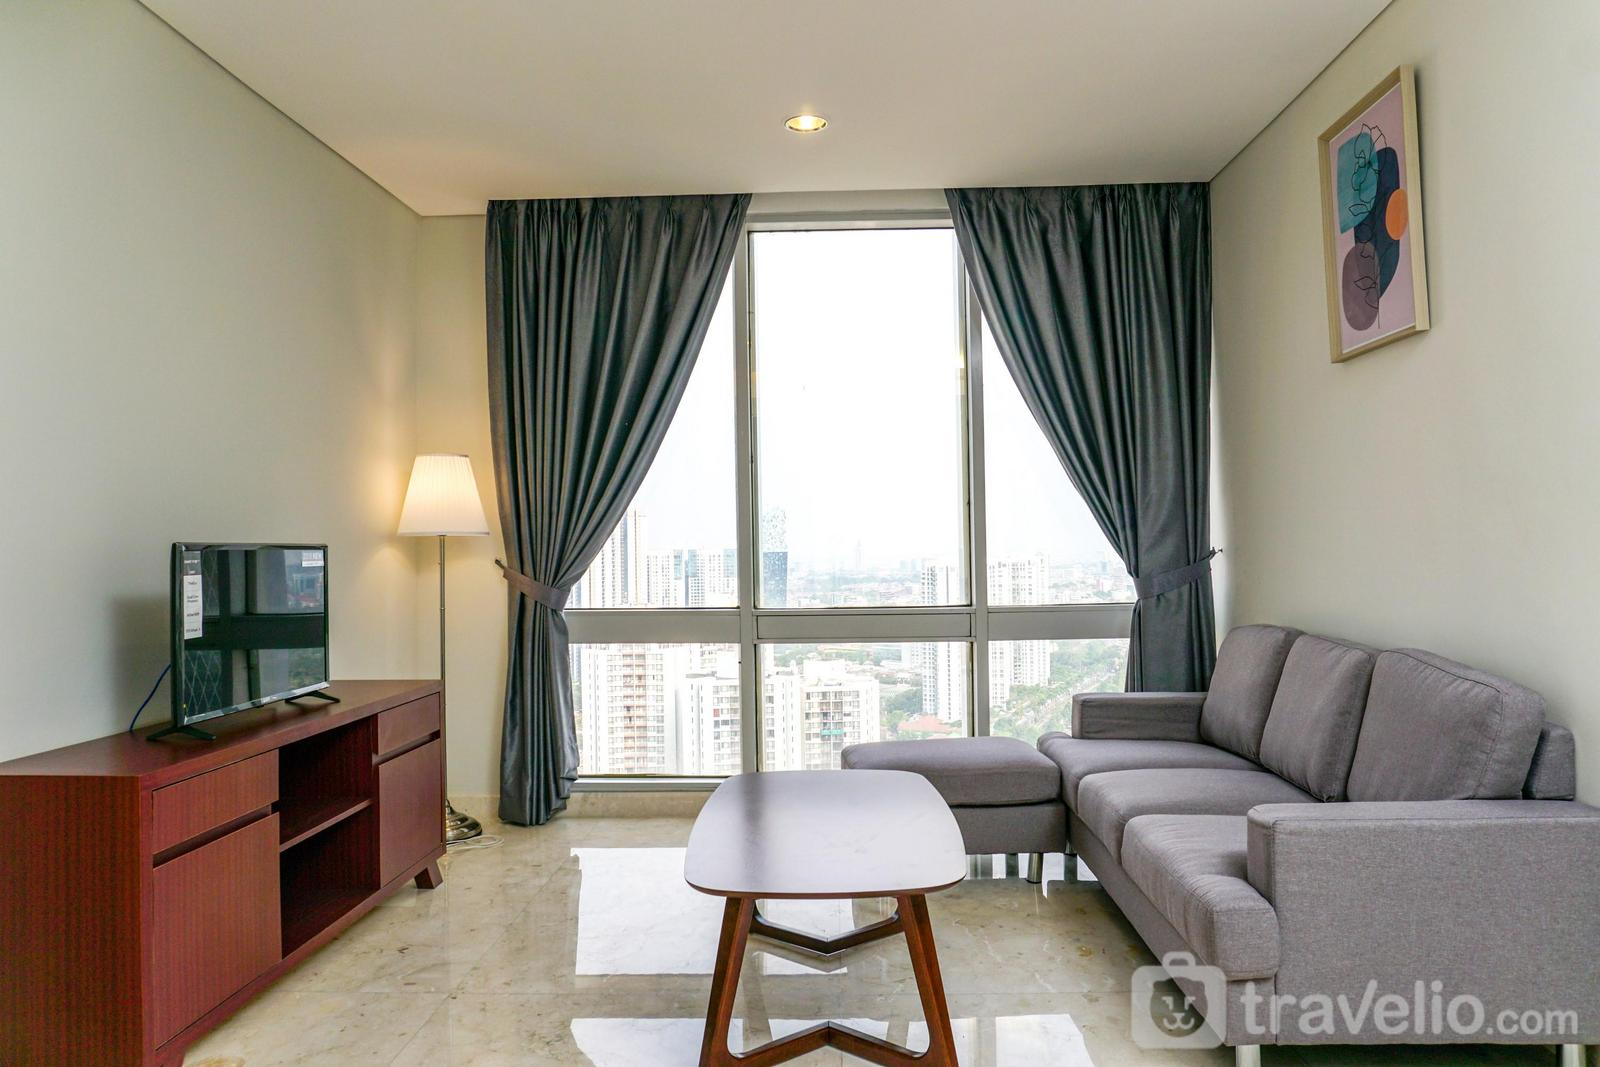 The Grove Suites - Cozy 2BR @The Grove Suite Apartment By Travelio